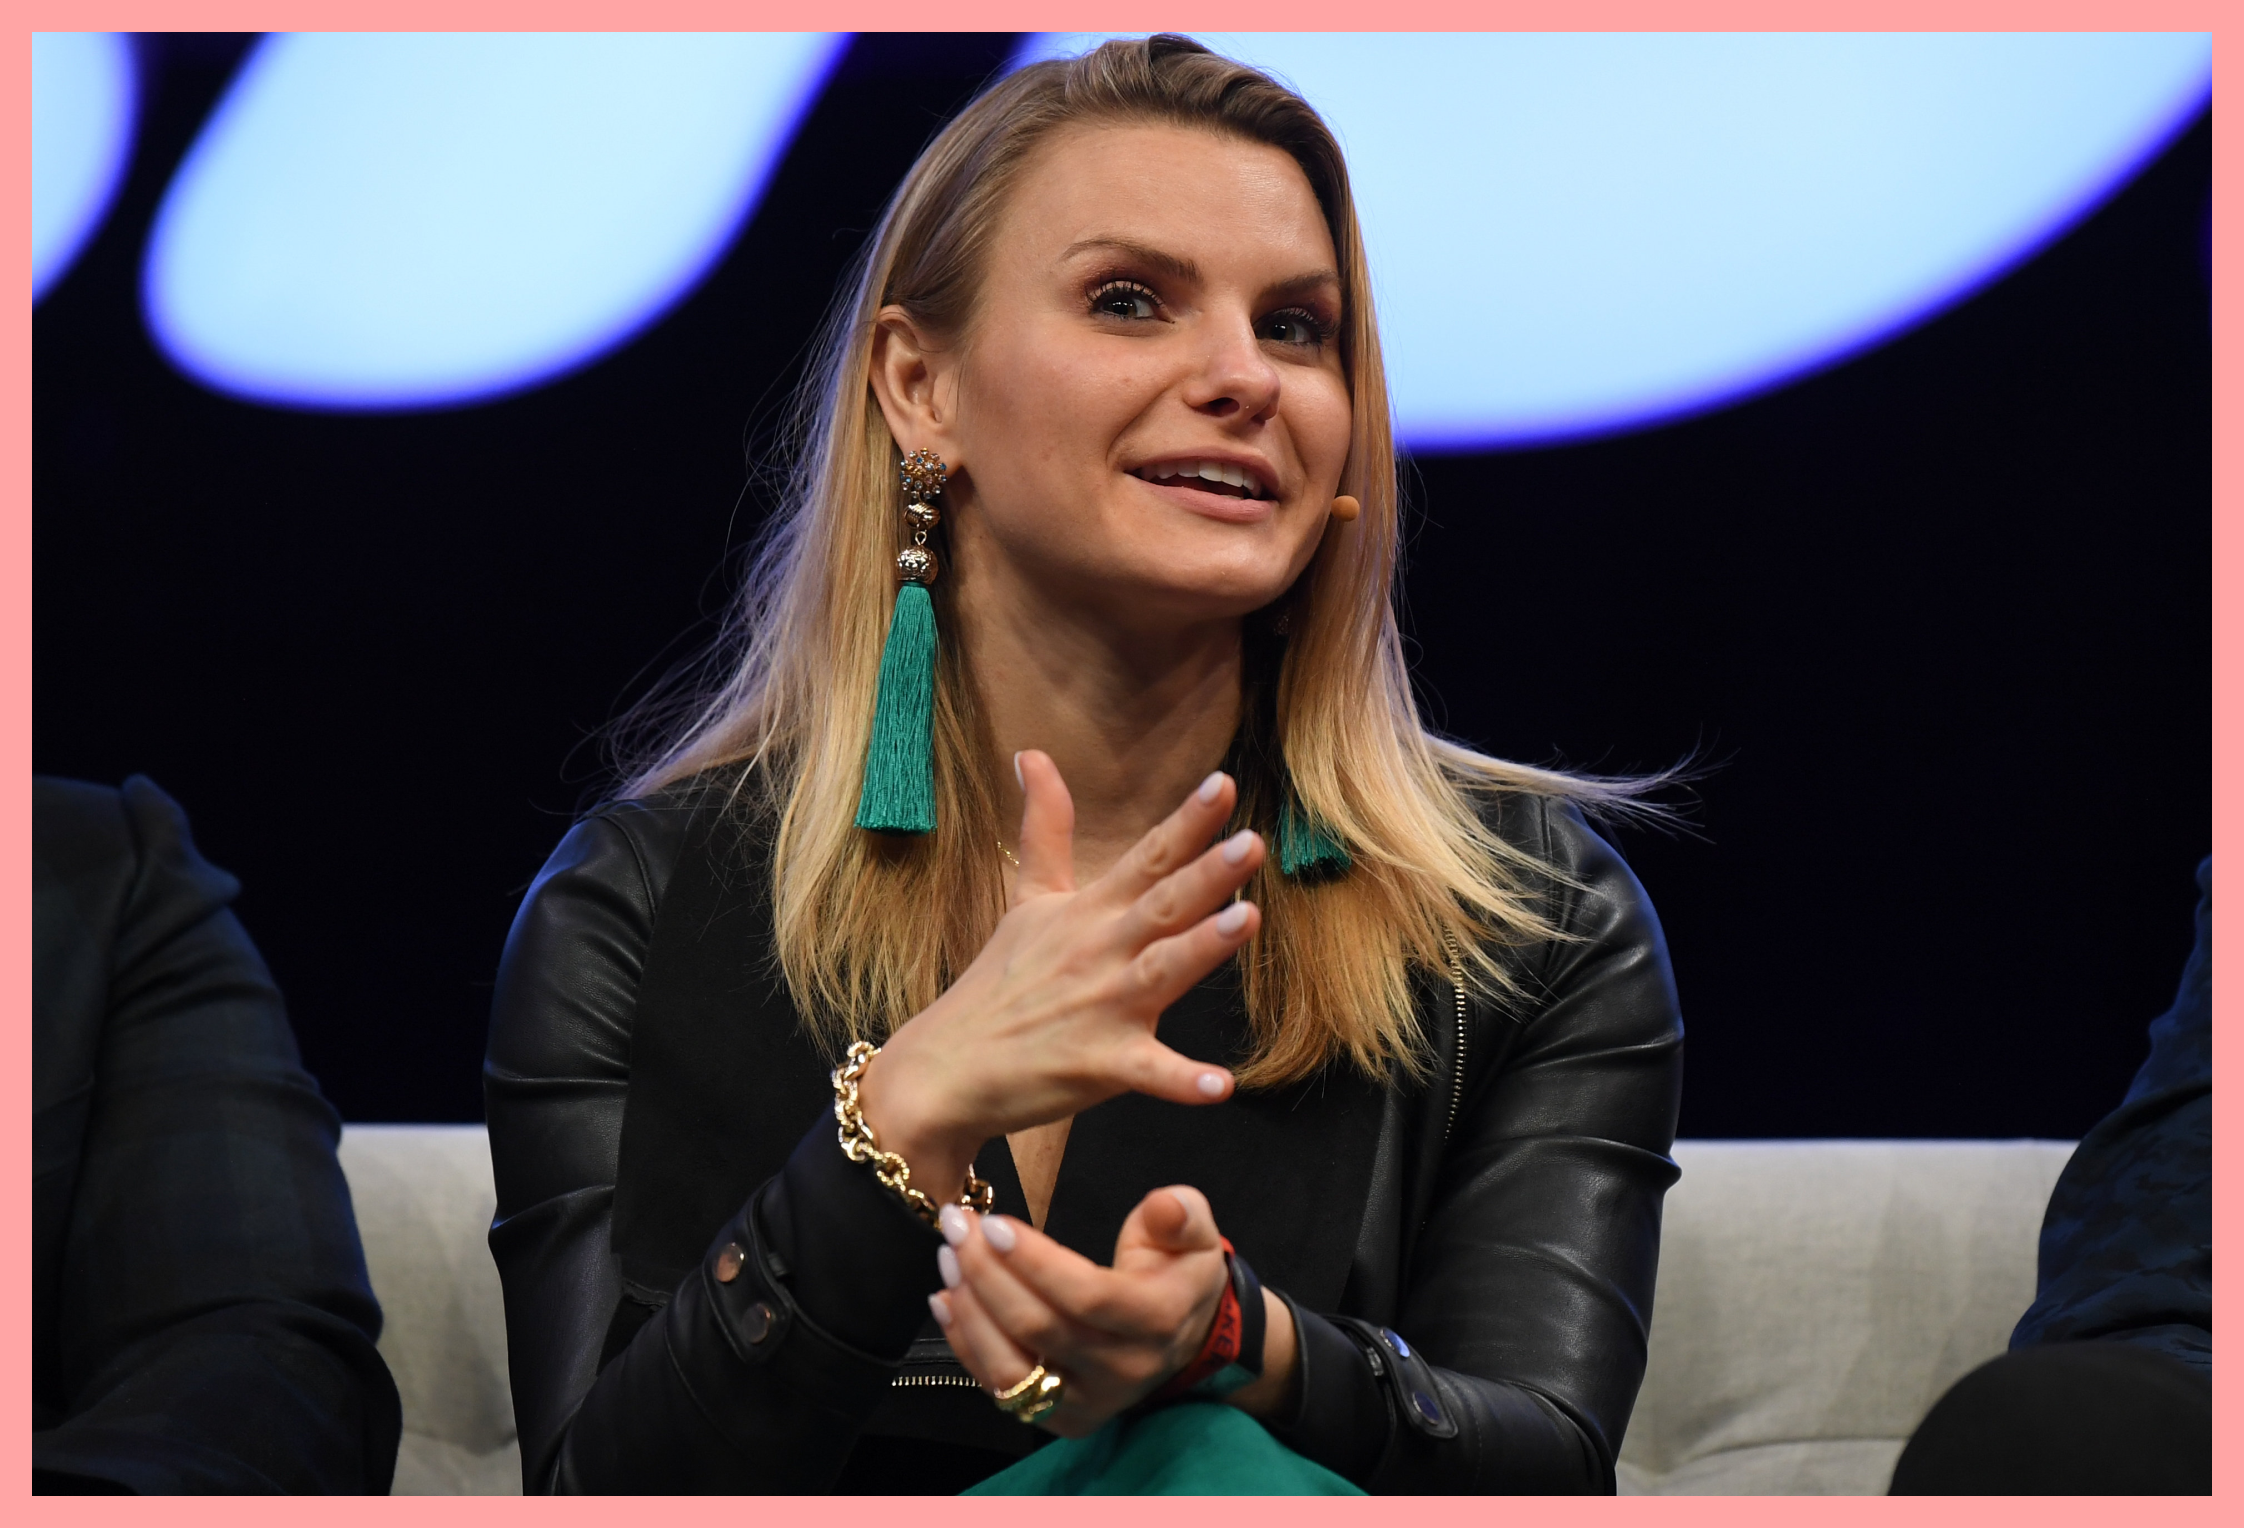 Michele Romanow, co-founder and president of Clearbanc and Dragon on Dragon's Den